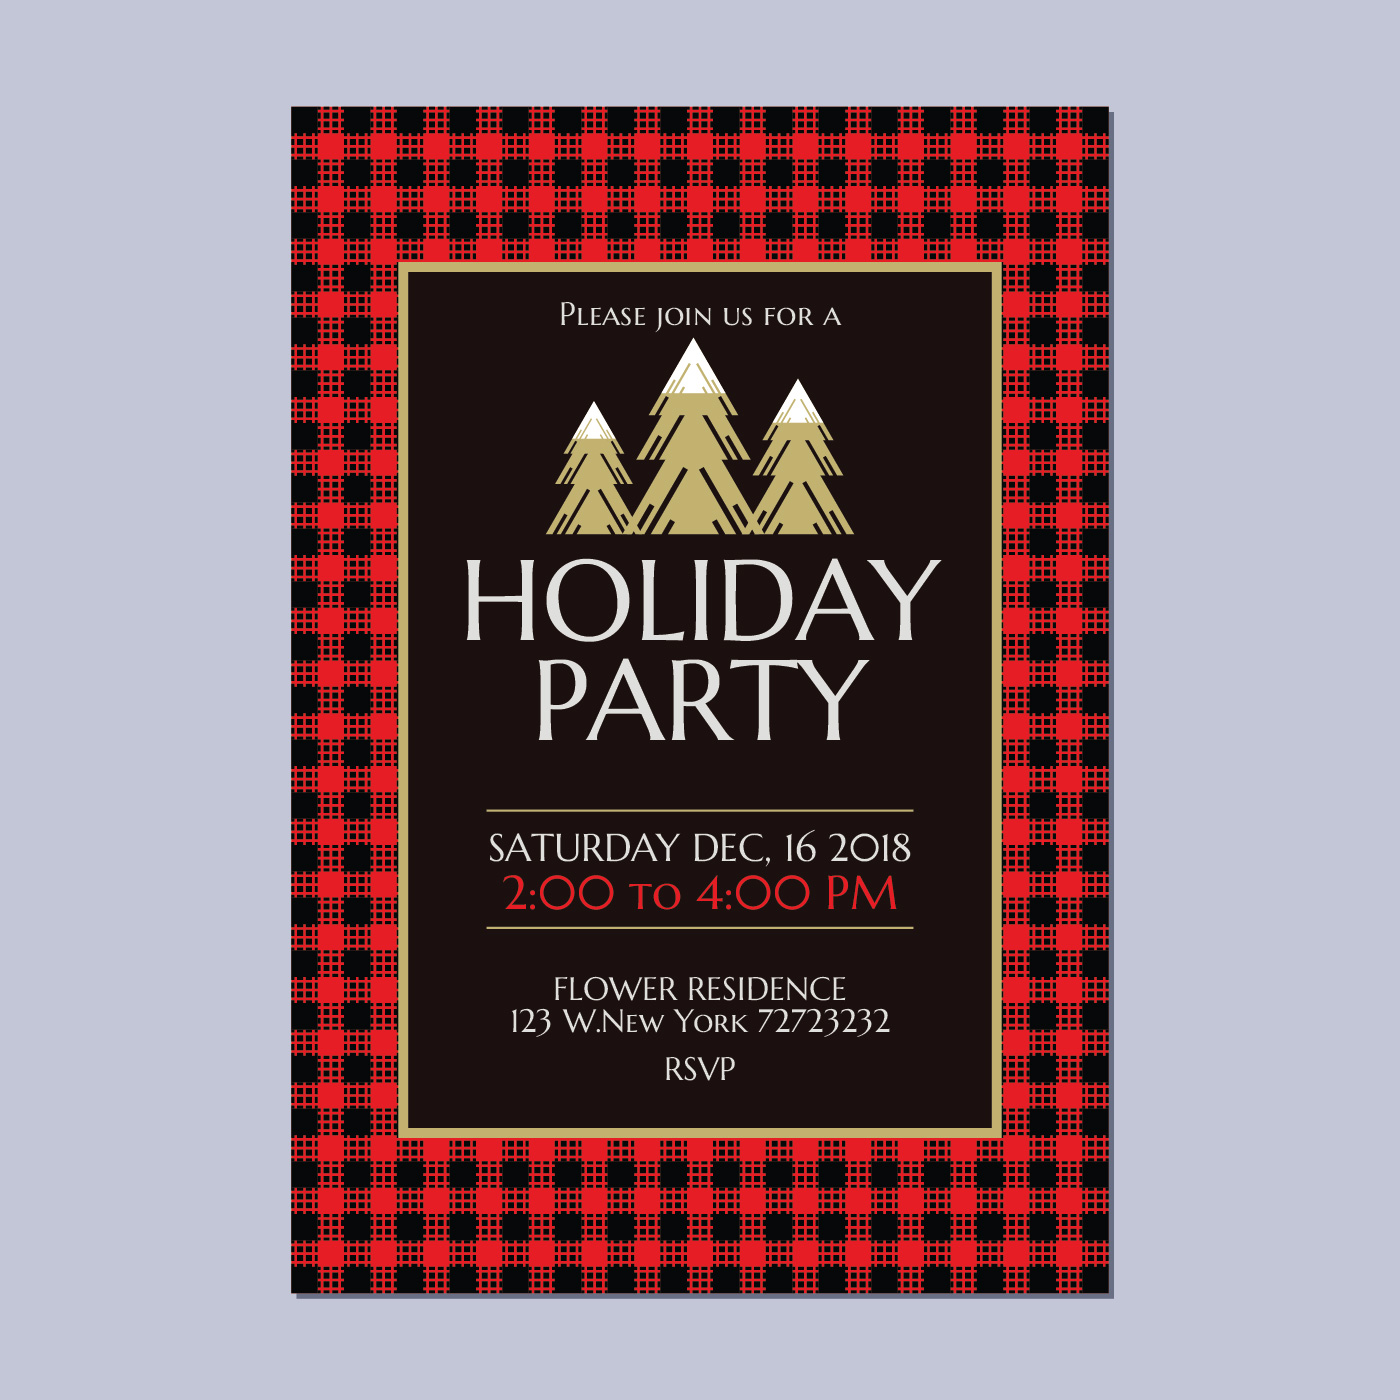 Holiday Party Invitation with buffalo Plaid Theme - Download Free ...